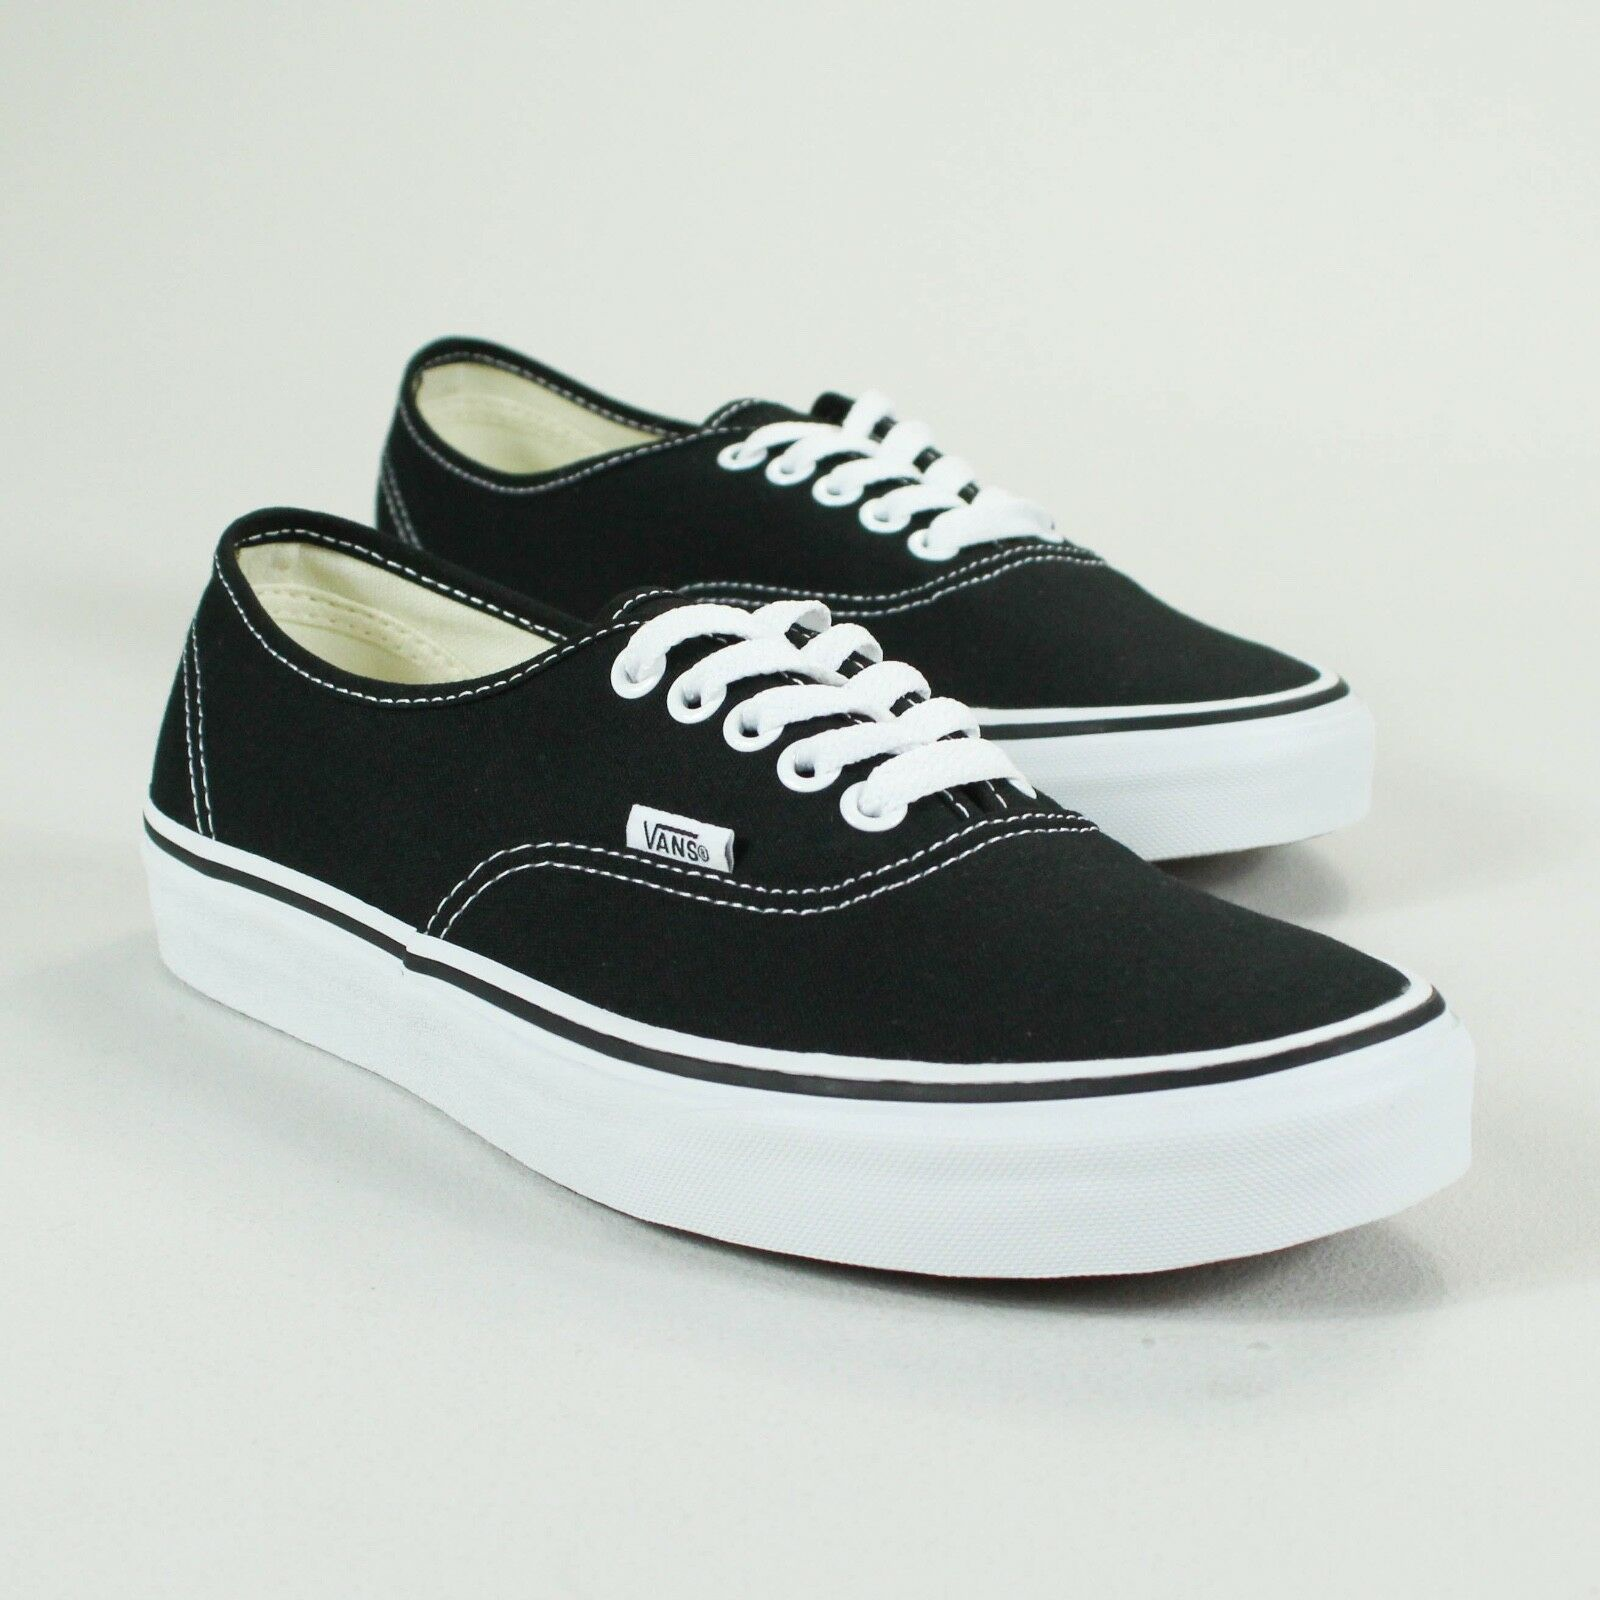 Vans Authentic Trainers Black Black Black White Brand New in box UK Sizes 4,5,6,7,8,9,10,11 d153ca